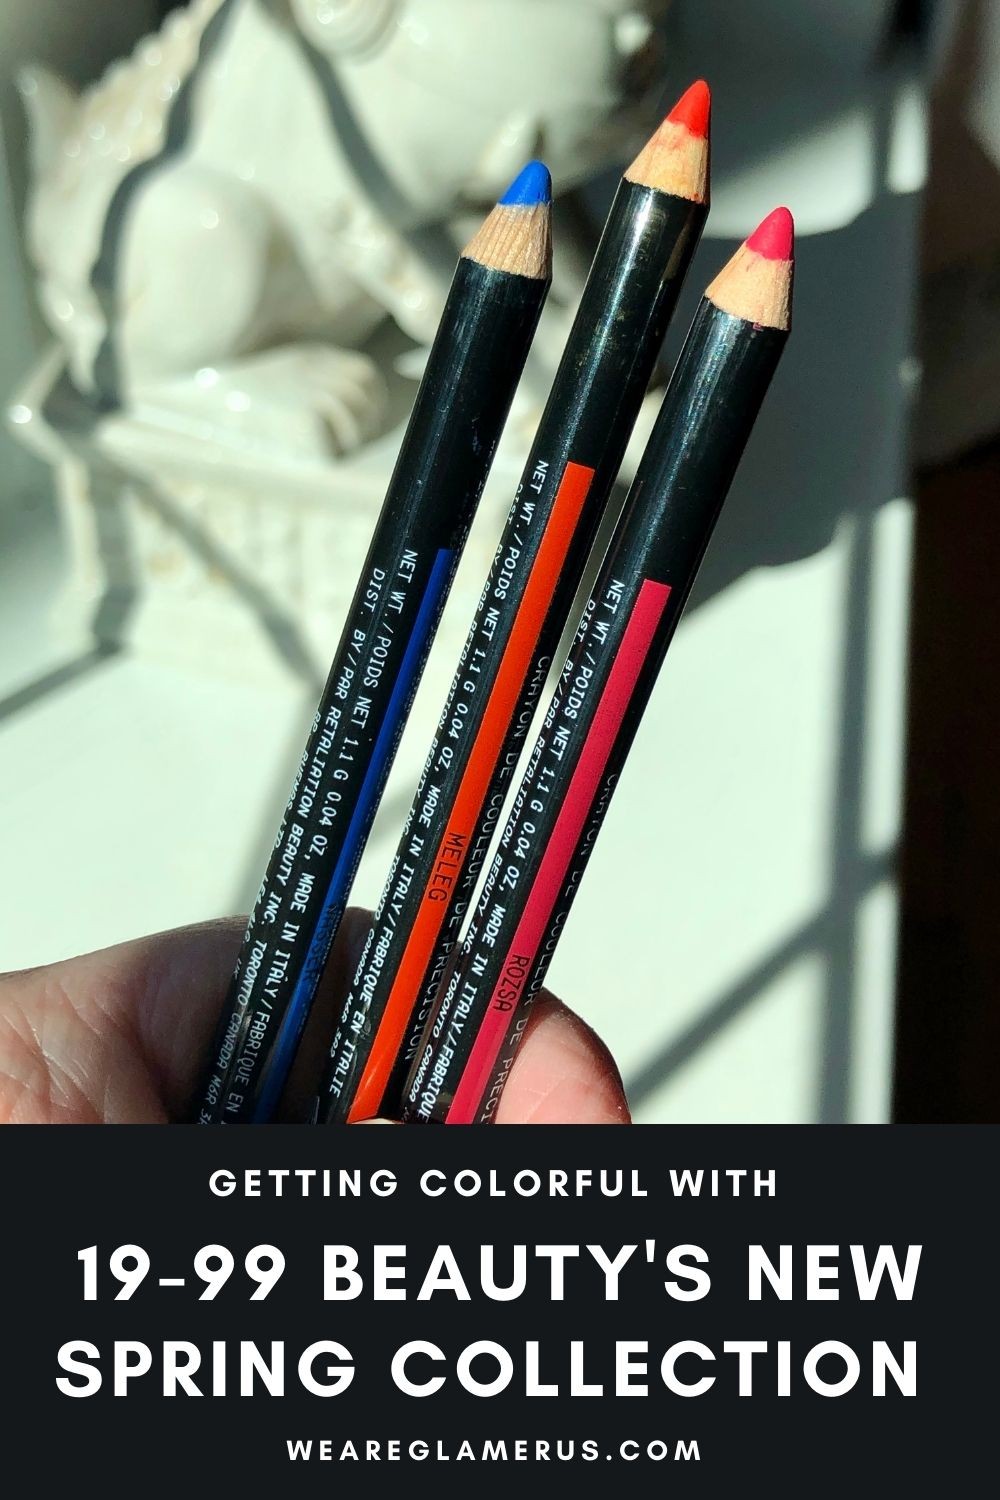 Take a peek through 19-99 Beauty's new spring collection of Colour Precision Pencils in today's post!